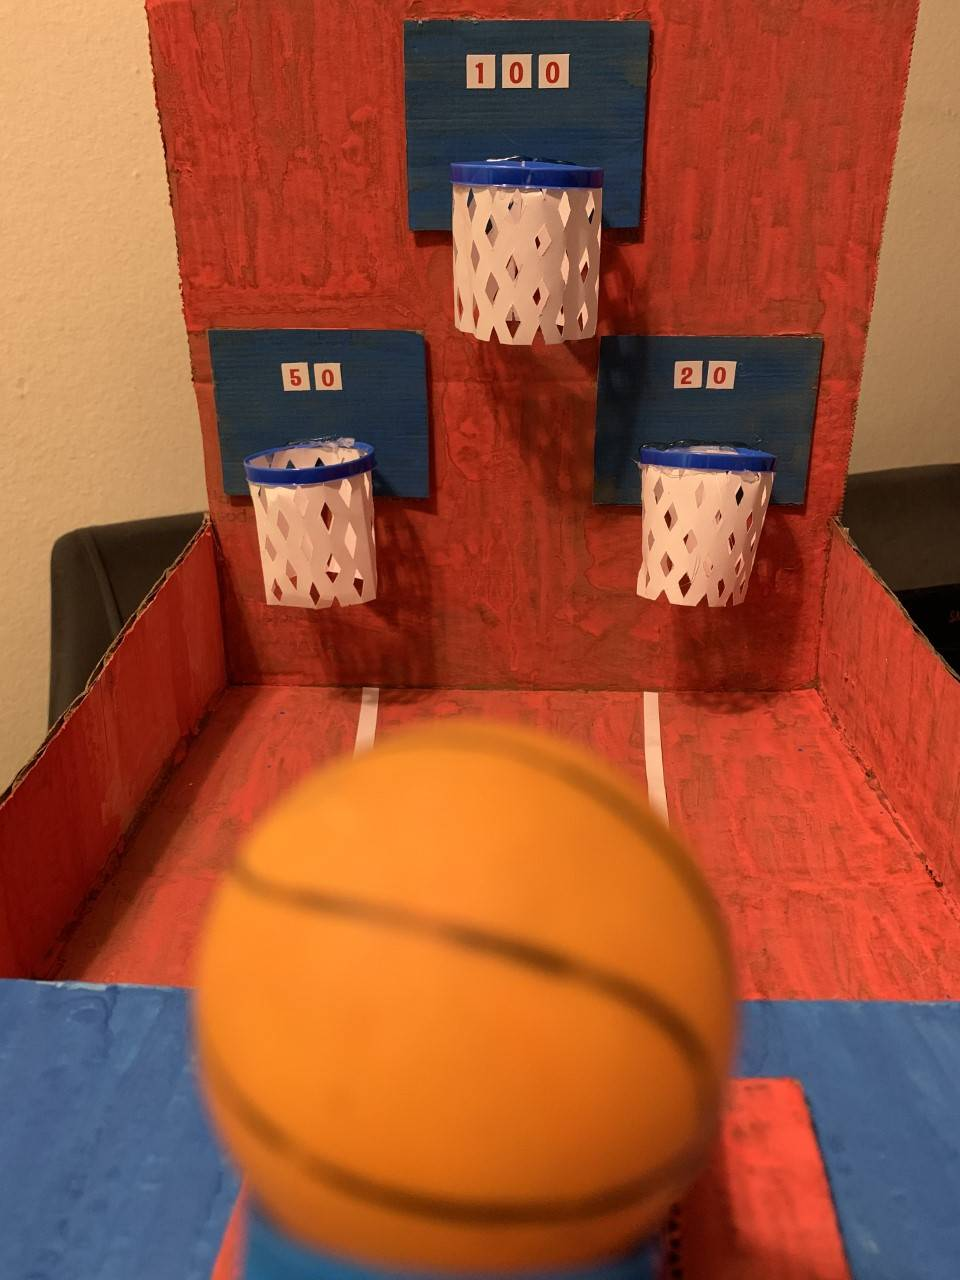 A tiny ping-pong ball basketball is about to shoot towards tiny baskets.